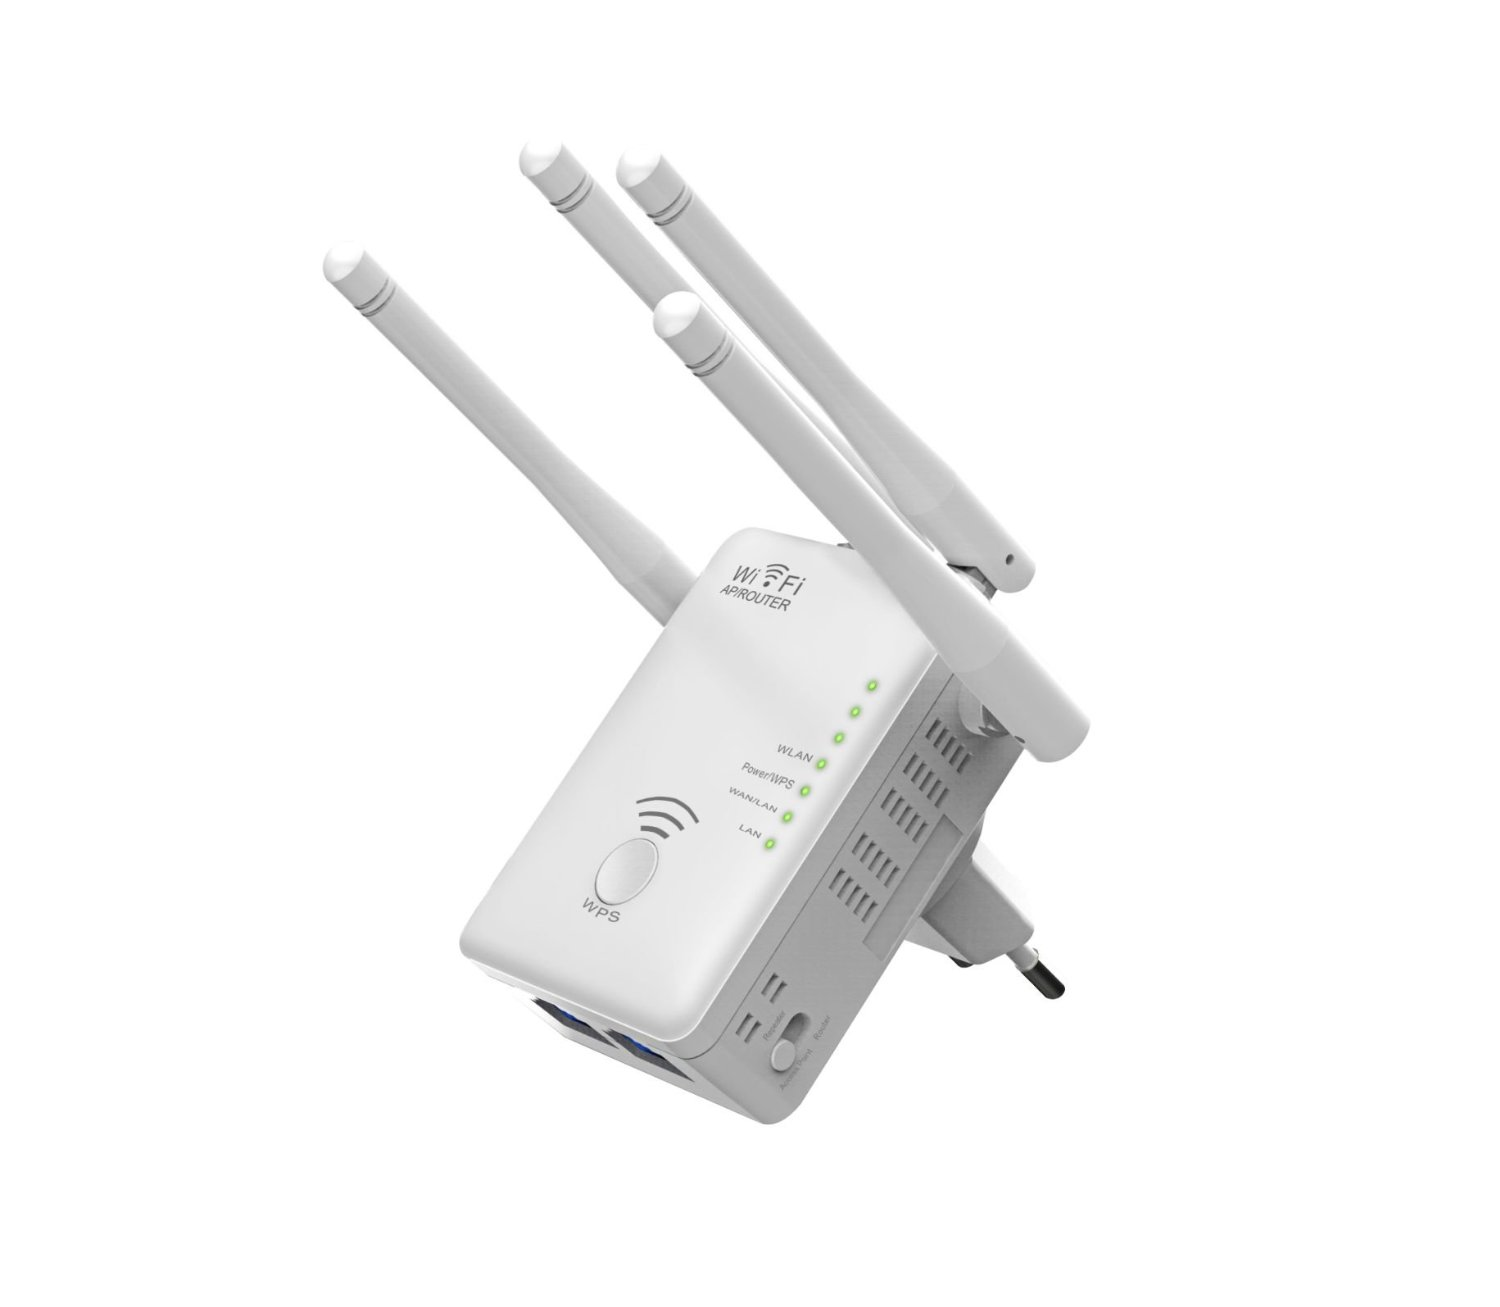 LB1 High Performance Wireless Network Repeater//AP Router Dual Band Fast Wireless Router WiFi AC 750Mbps 2.4 GHz 300Mbps + 5.0 GHz 433Mbps